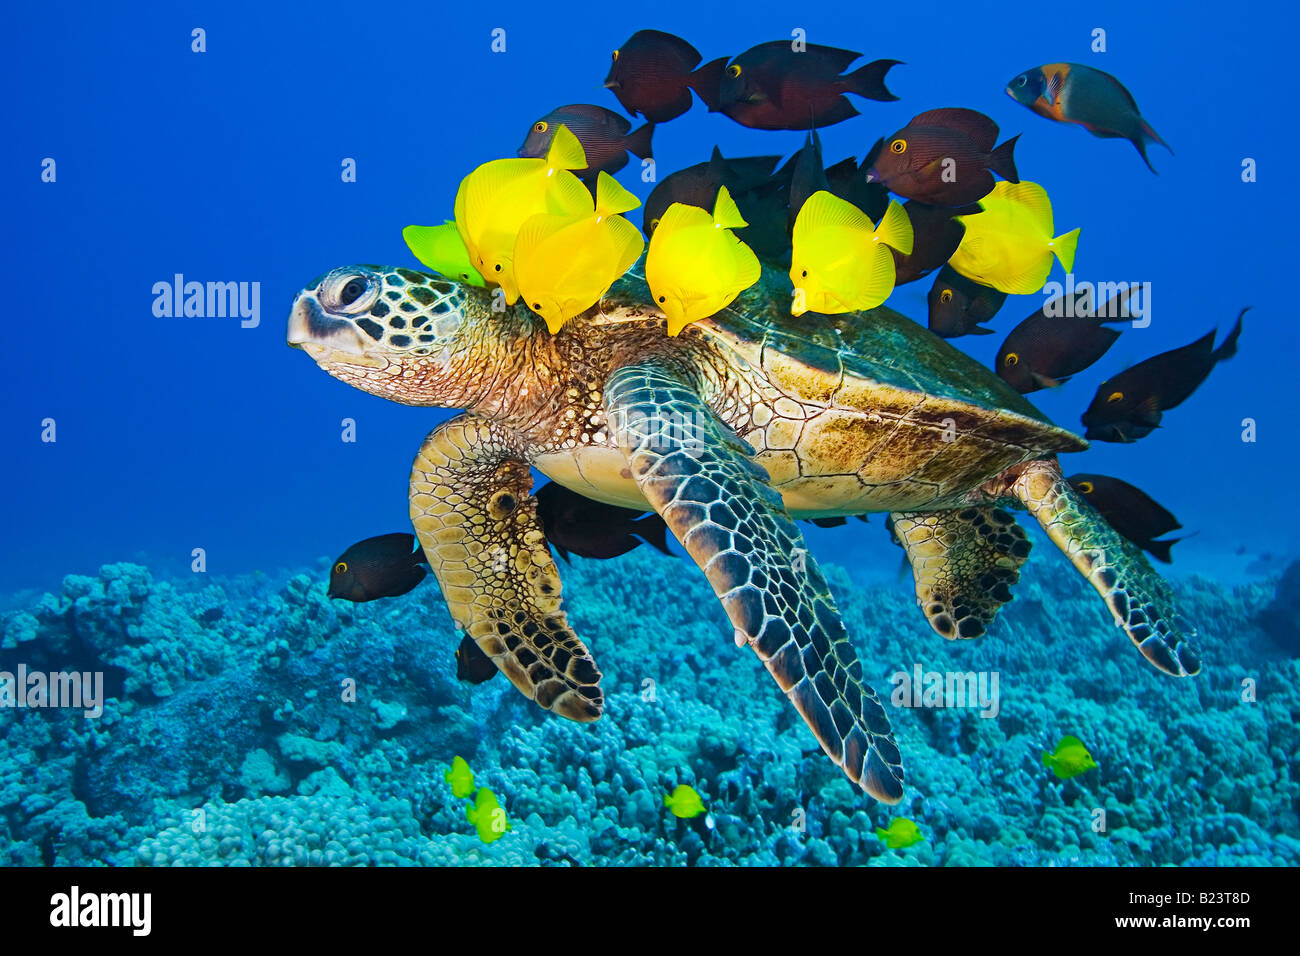 Green Sea Turtle Being Cleaned By Tropical Reef Fish Stock Photo ...